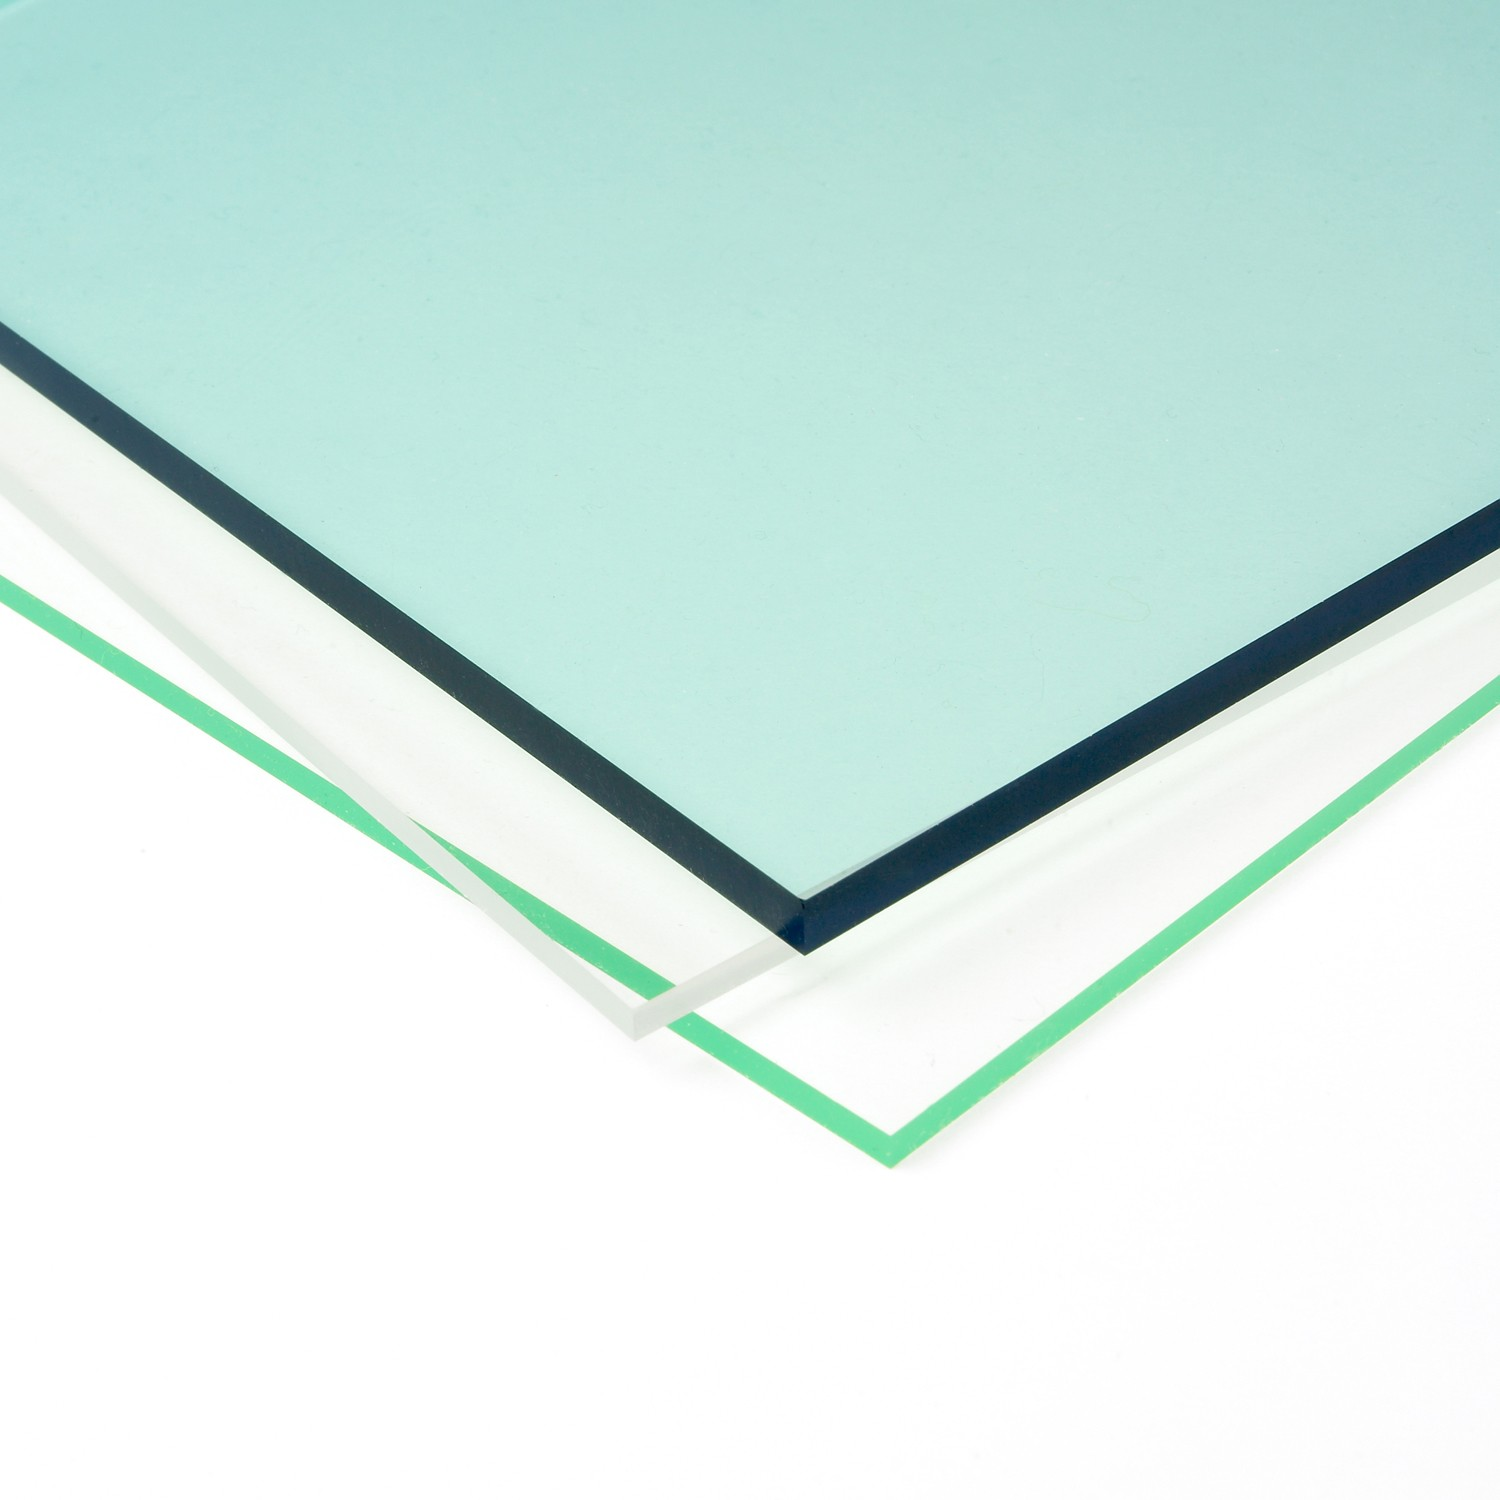 PSD 6mm A5 Size Extruded Acrylic Plastic Sheet - Clear, 148mm x 210mm